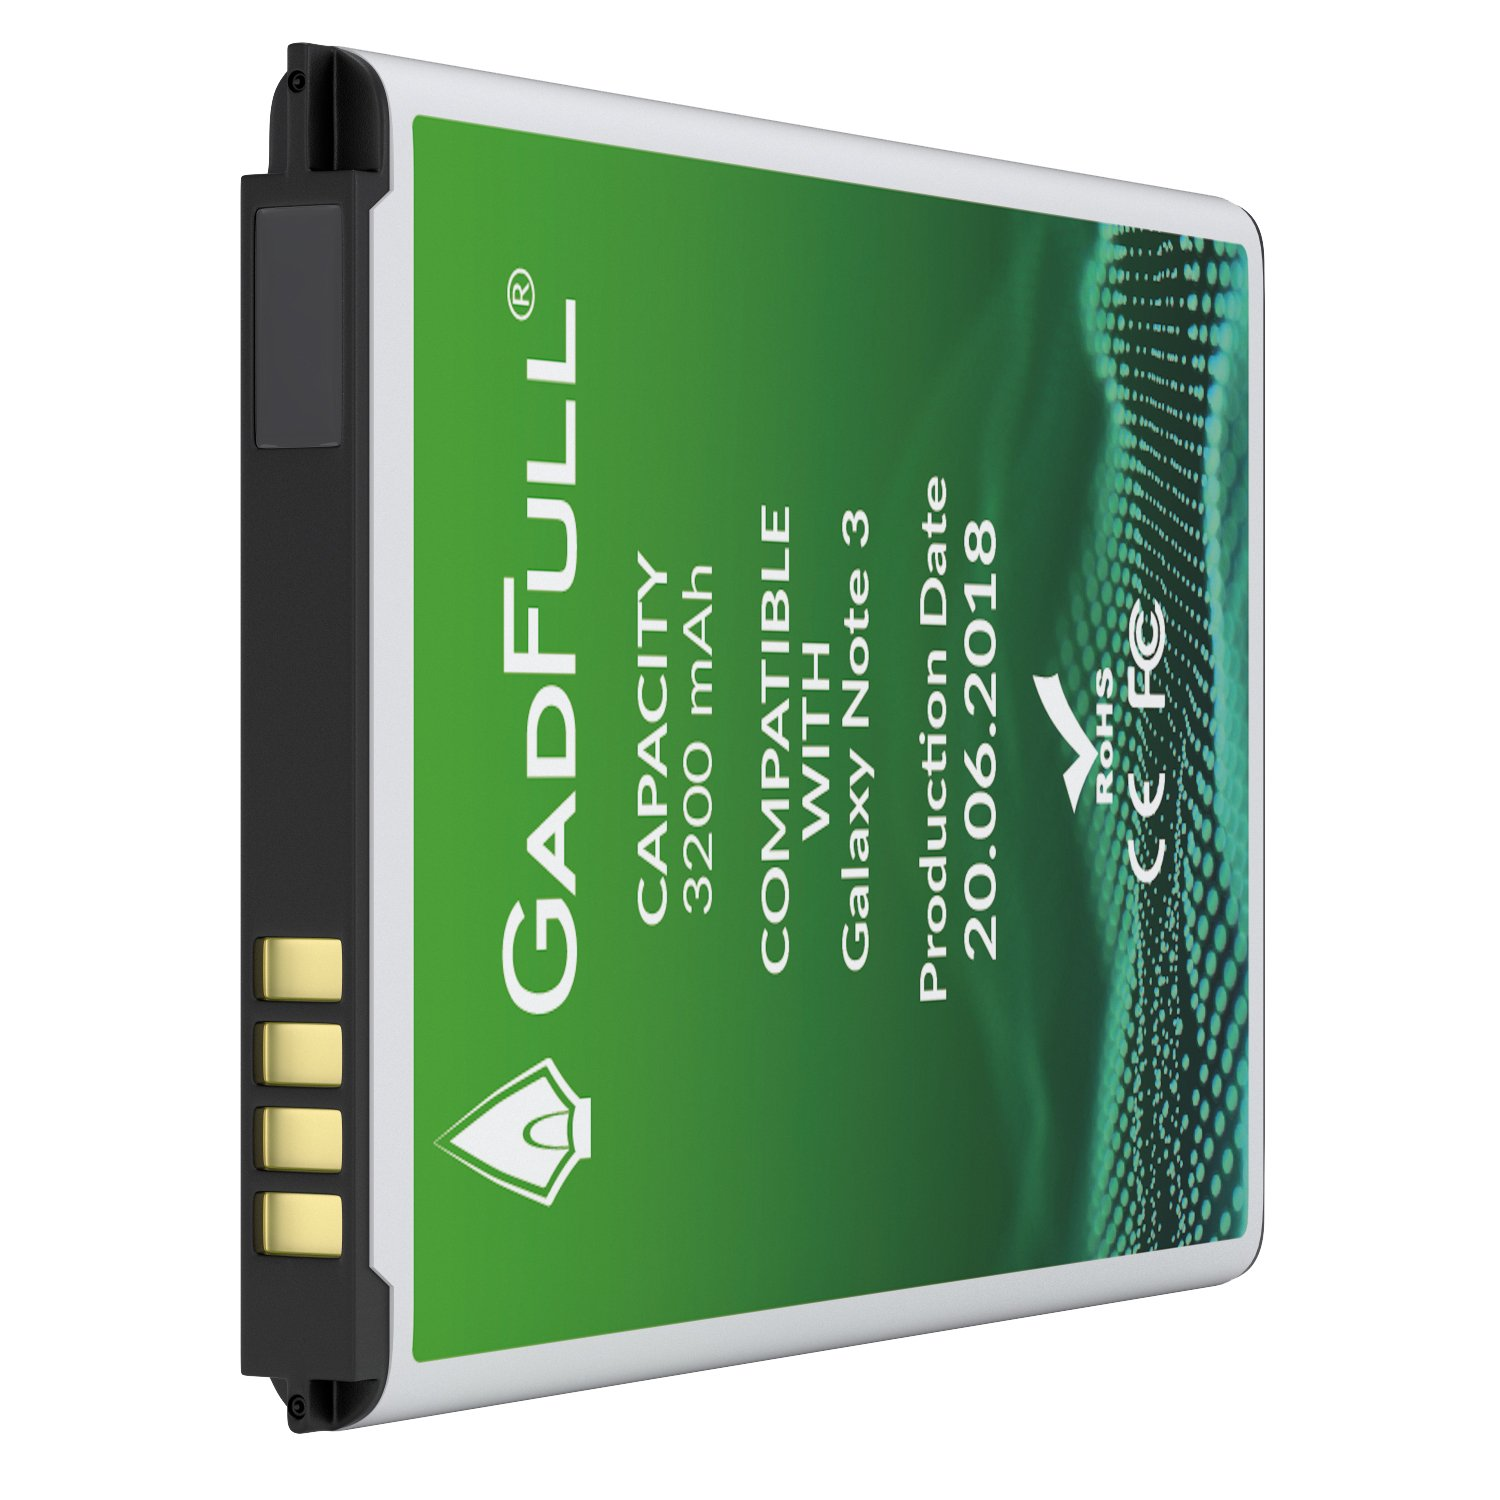 GadFull Battery for Samsung Galaxy Note 3 | Production date 2018 | Corresponds to the original EB-B800BE | Smartphone model GT-N9000 | GT-N9005 | GT-N 9006 | GT-N9009 | replacement battery by GadFull (Image #7)